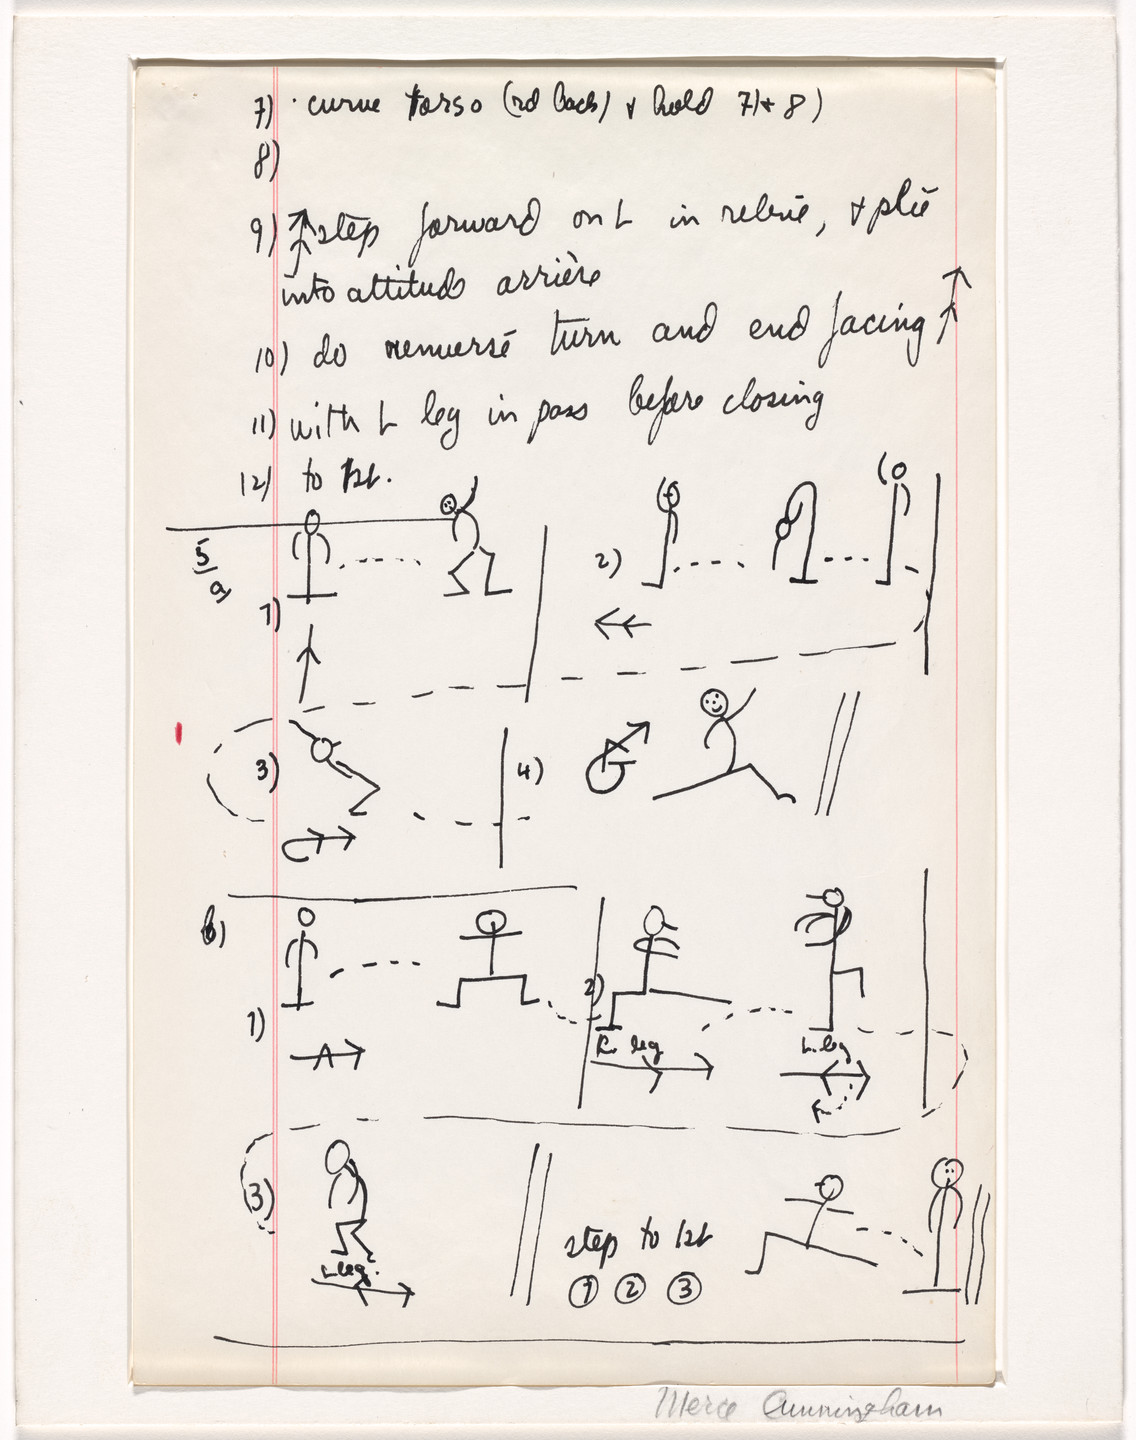 Merce Cunningham. Aeon. 1961/1963